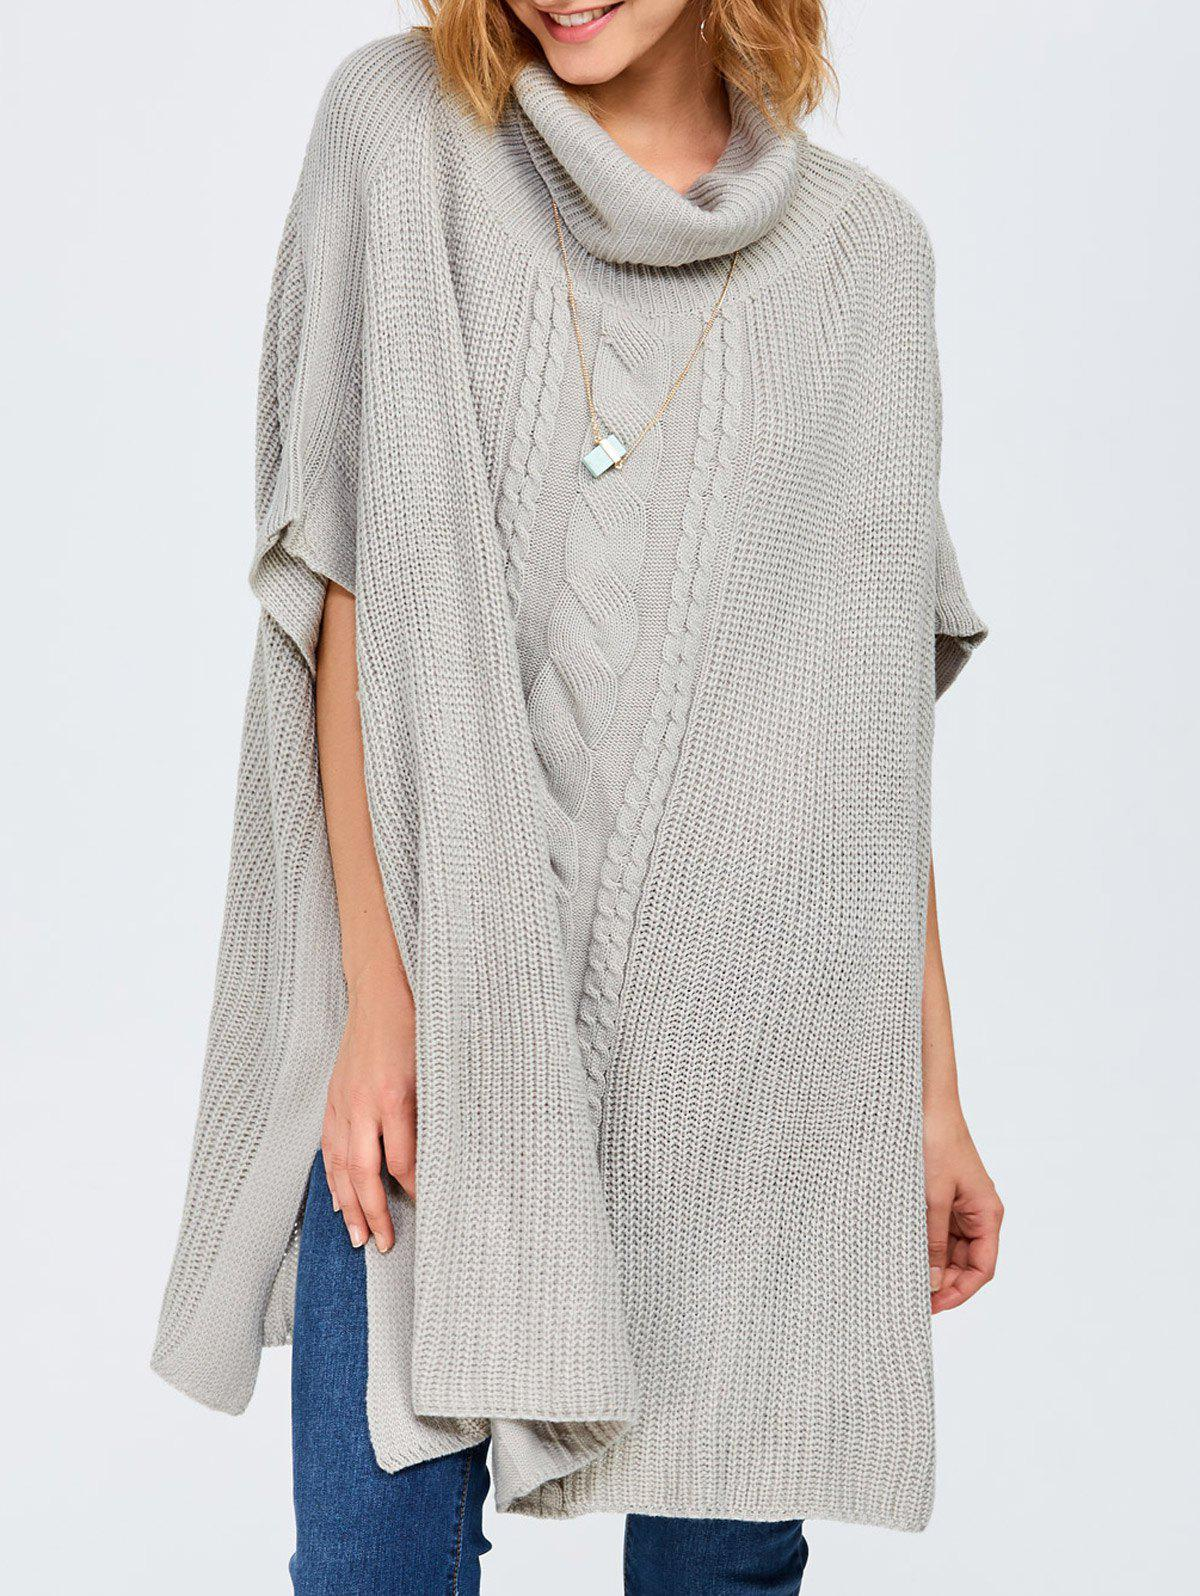 Chic Chunky Cable Knit Batwing Sleeves Sweater